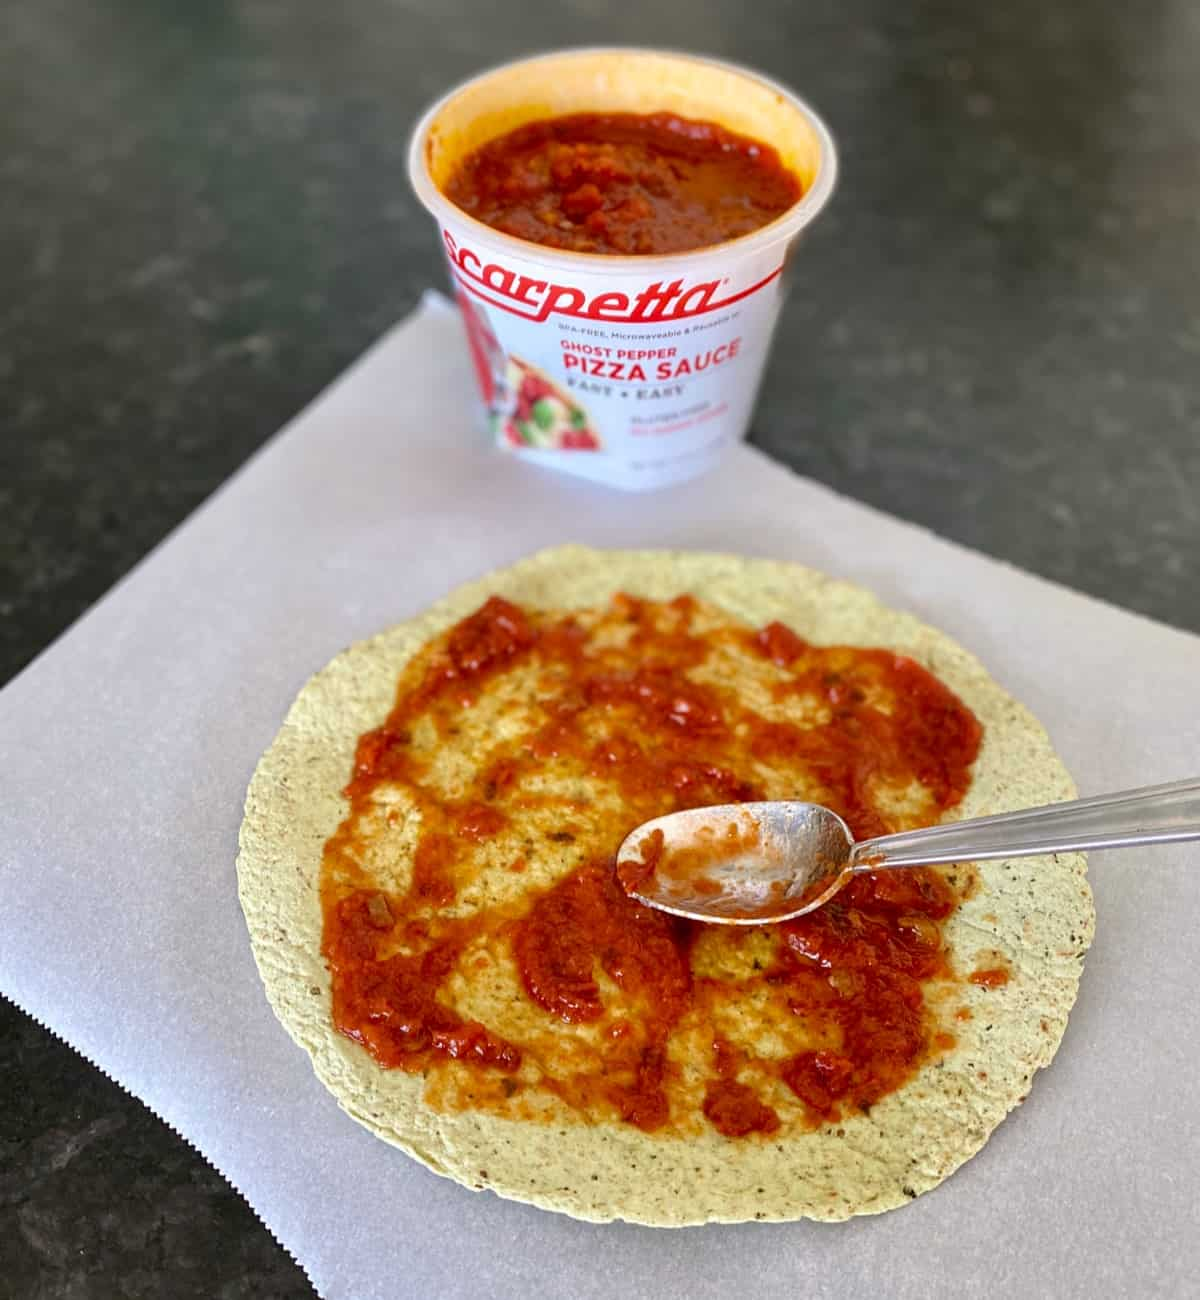 Spreading pizza sauce on crispy tortilla with a spoon.